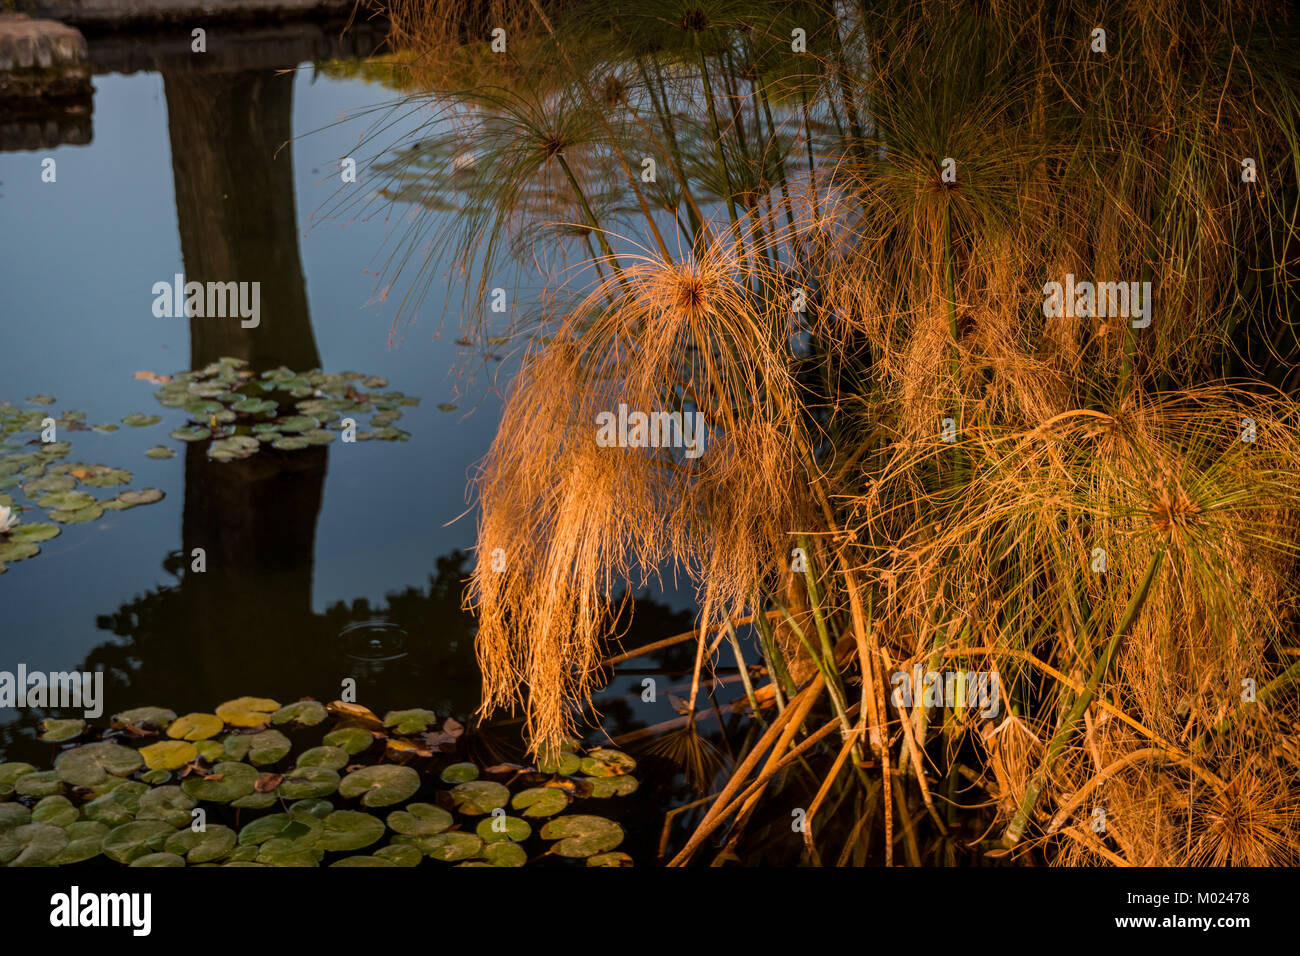 CORDOBA, ANDALUSIA / SPAIN - OCTOBER 14 2017:  GRASS IN WATER - Stock Image